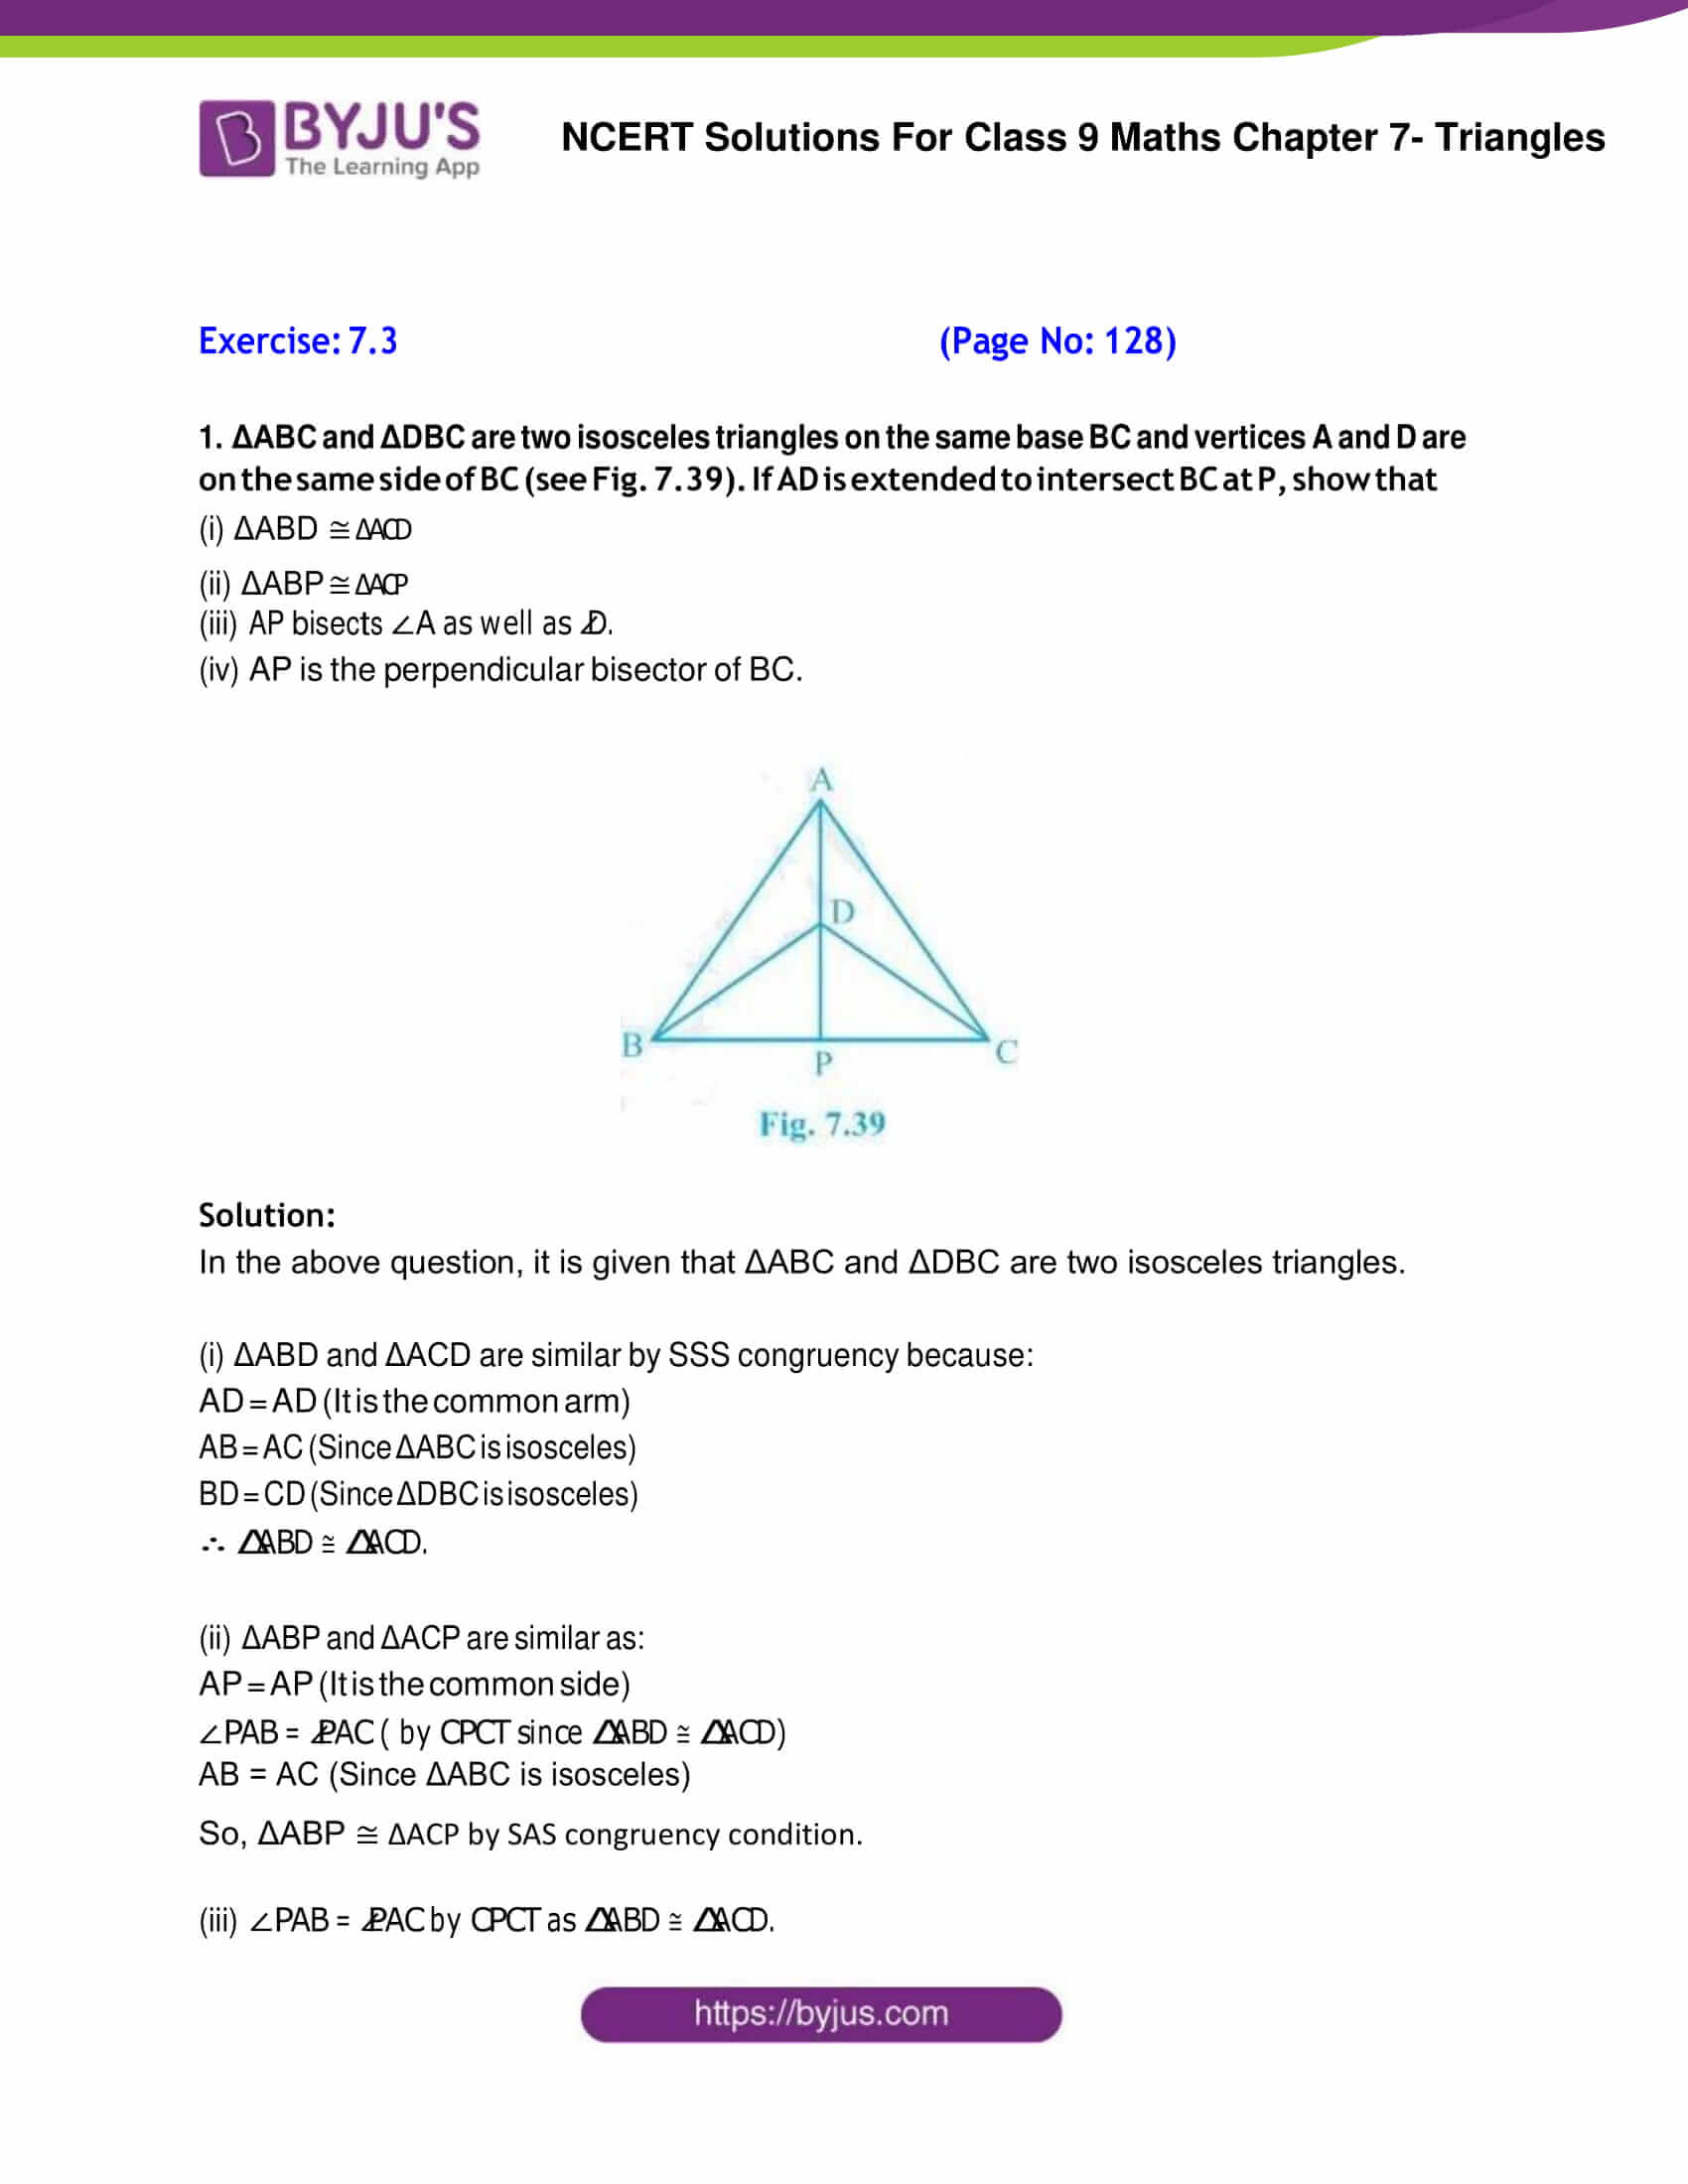 NCERT Solutions for Class 9 Maths Exercise 7 3 Chapter 7